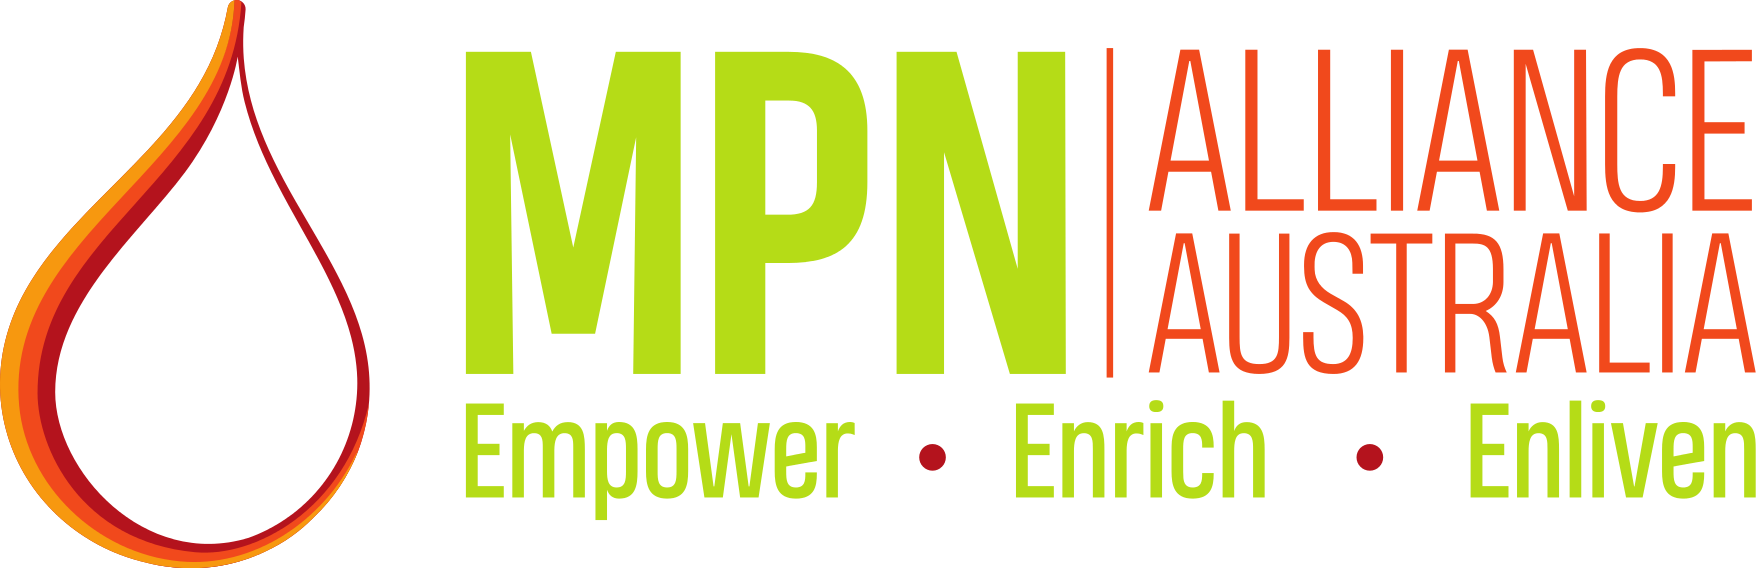 logo-mpn-aa-july-2018.png